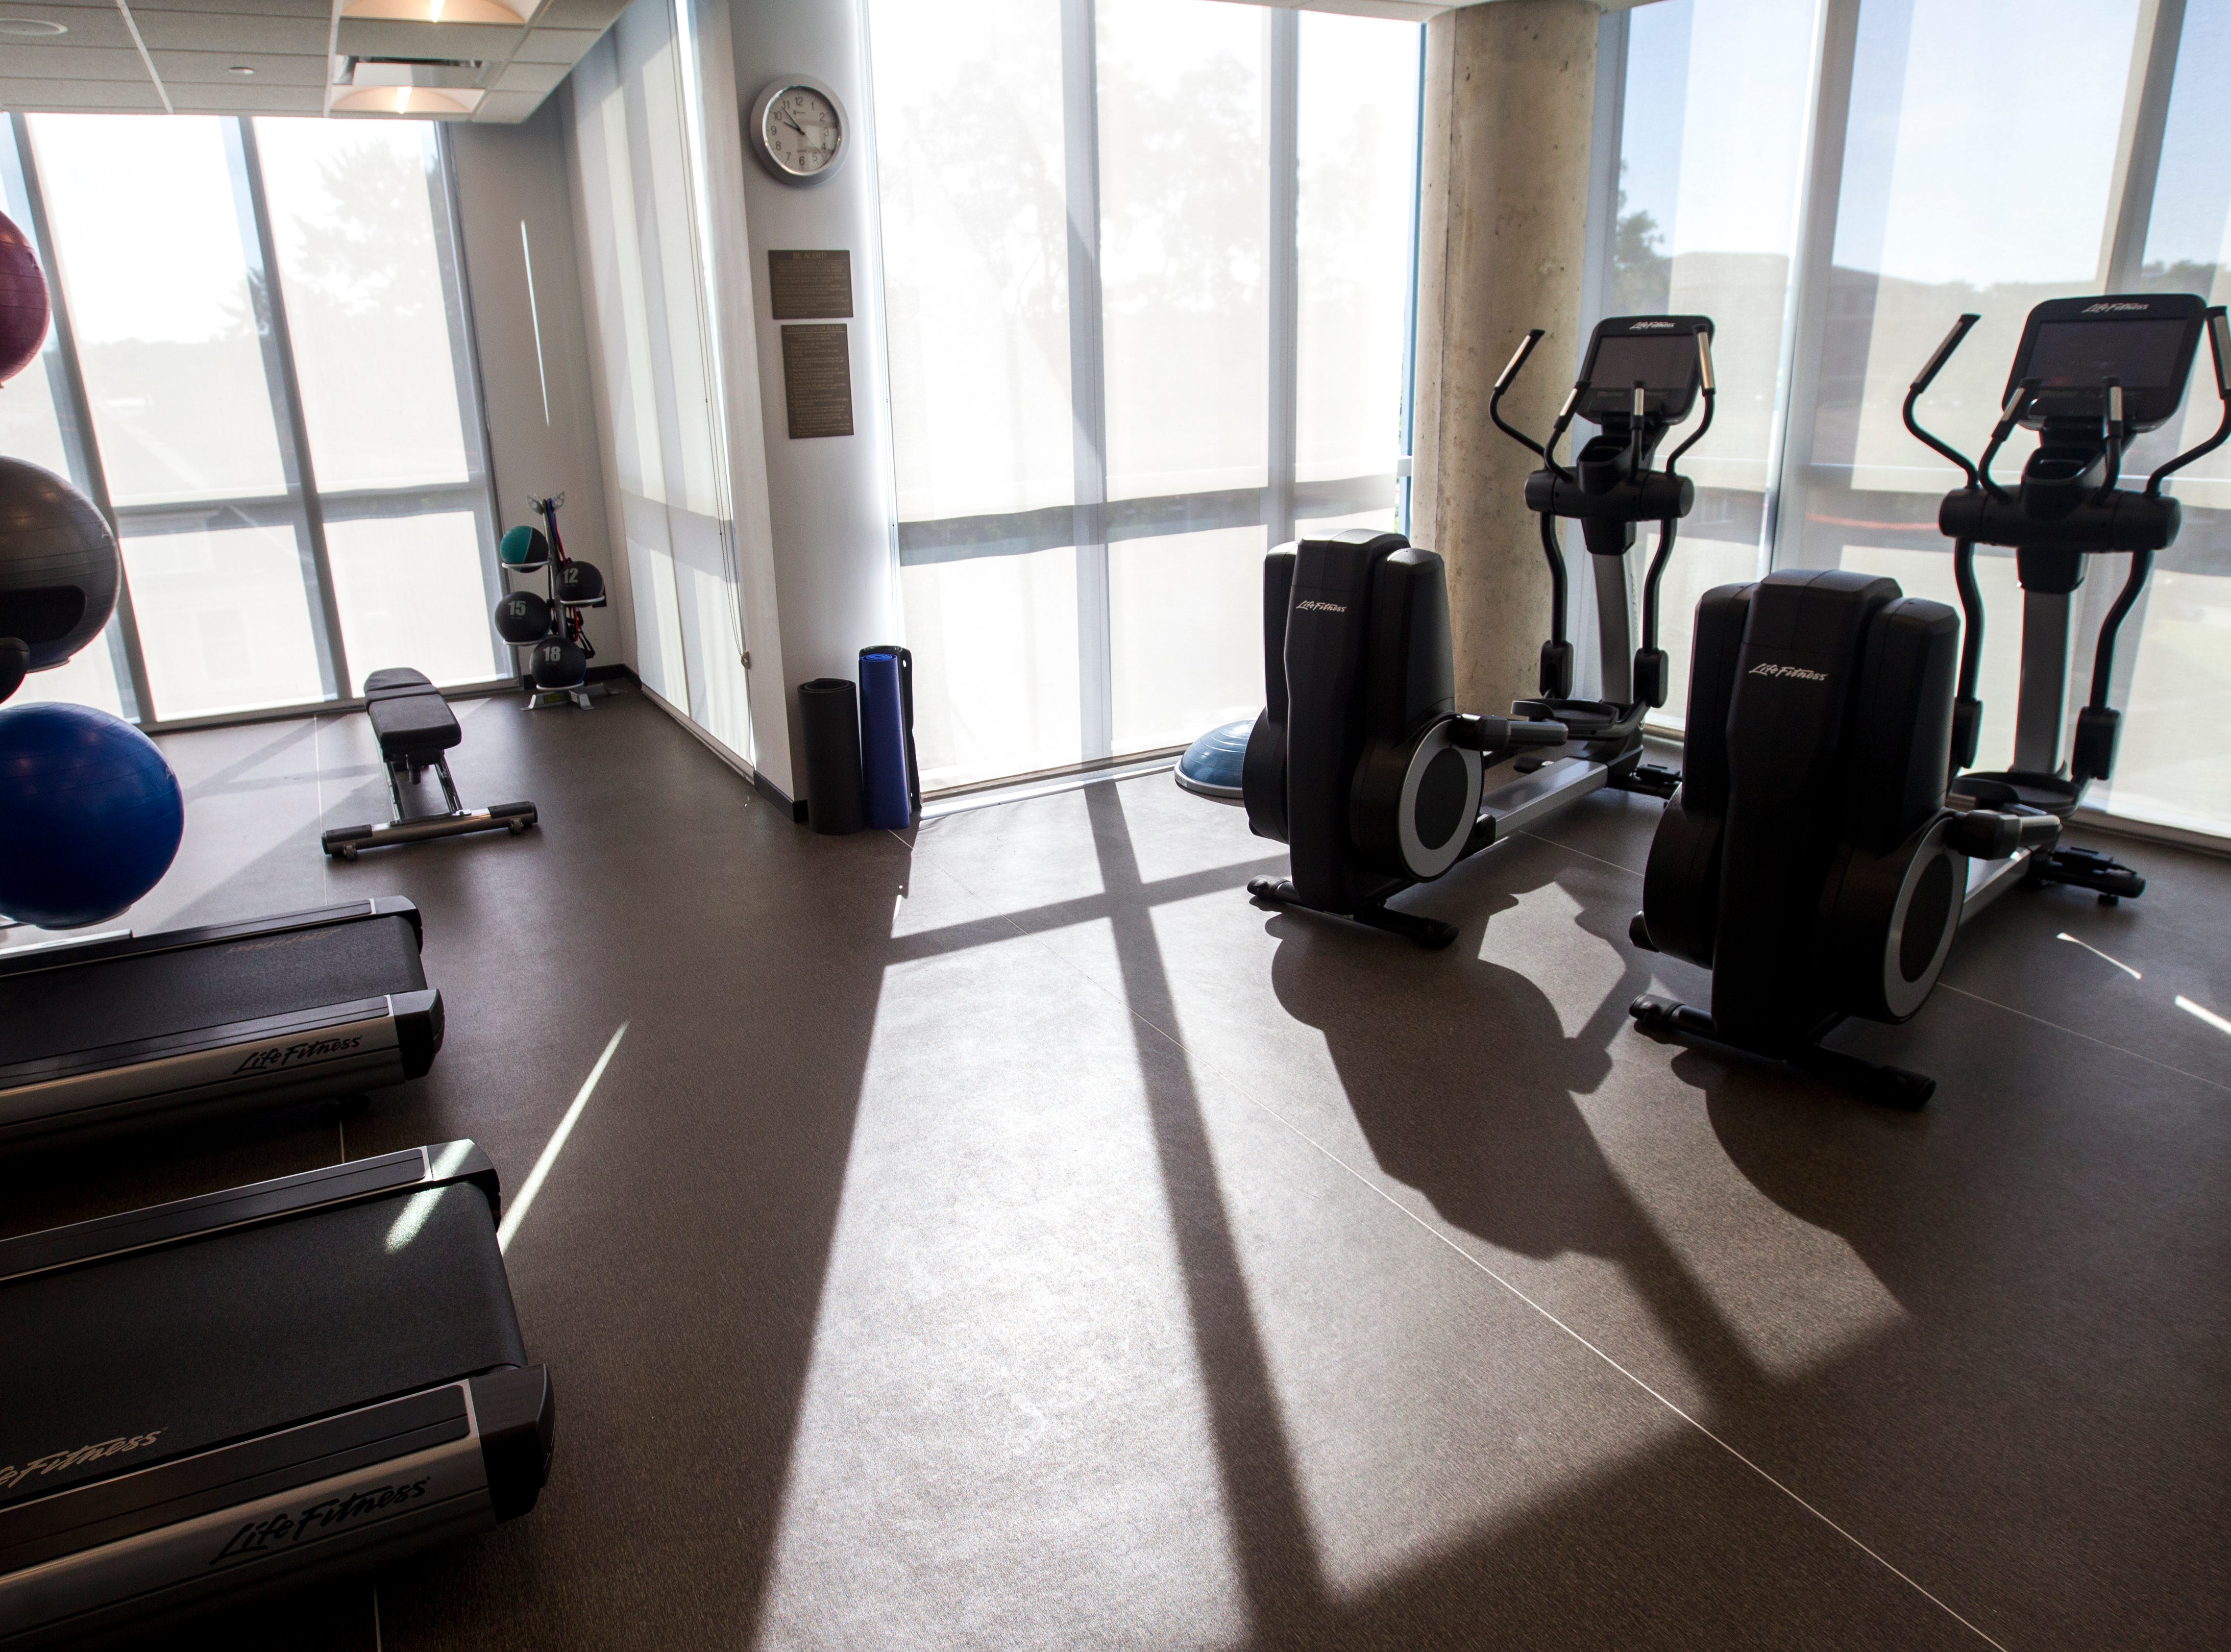 A workout area is seen during a tour on Tuesday, Sept. 4, 2018, at Hyatt Place on the corner of Court and Linn Streets in downtown Iowa City.